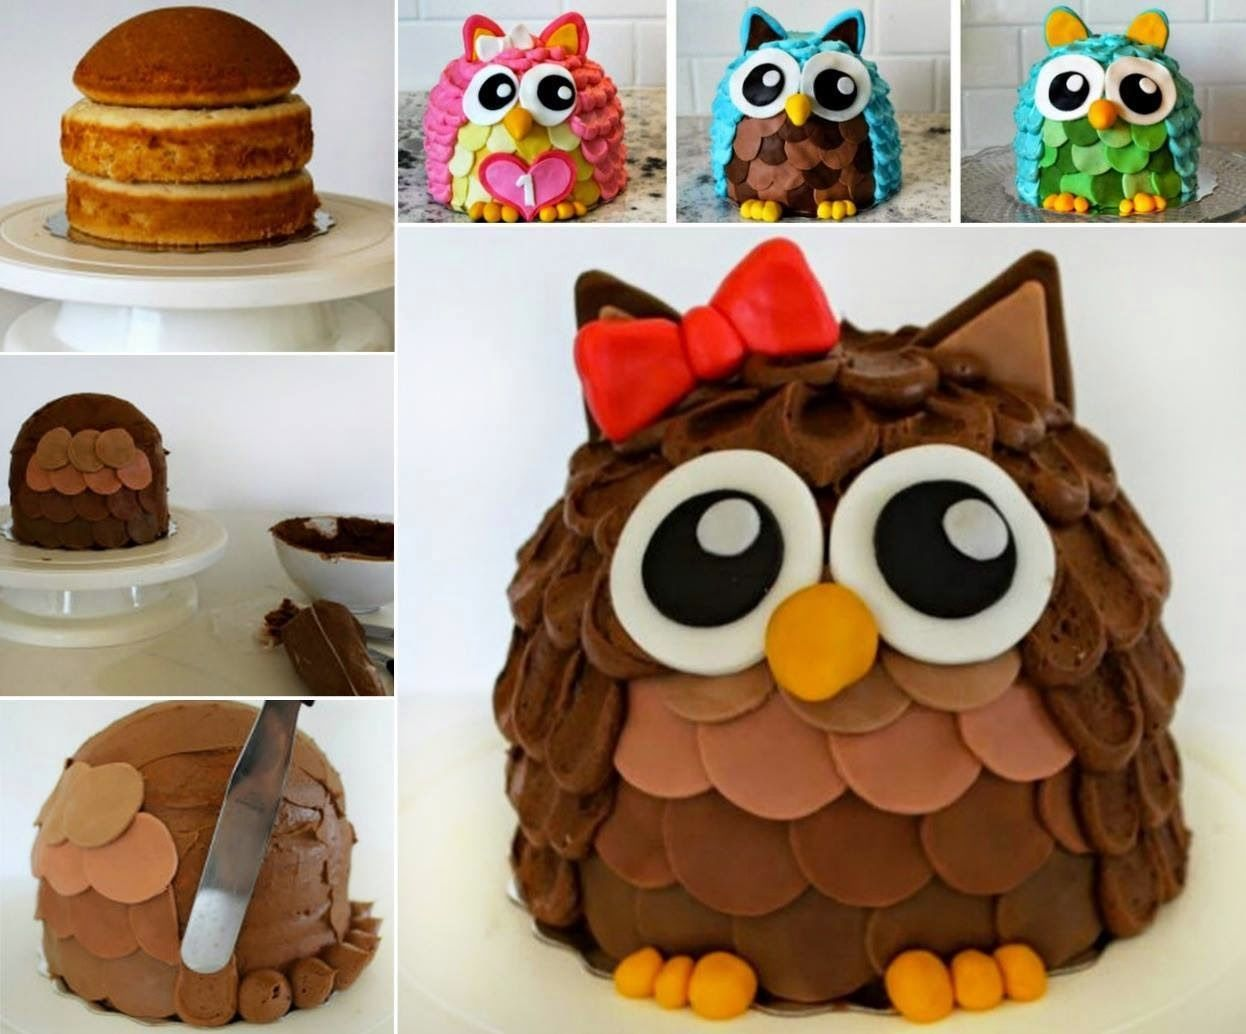 How To Make An Owl Cake Pictures Photos and Images for Facebook